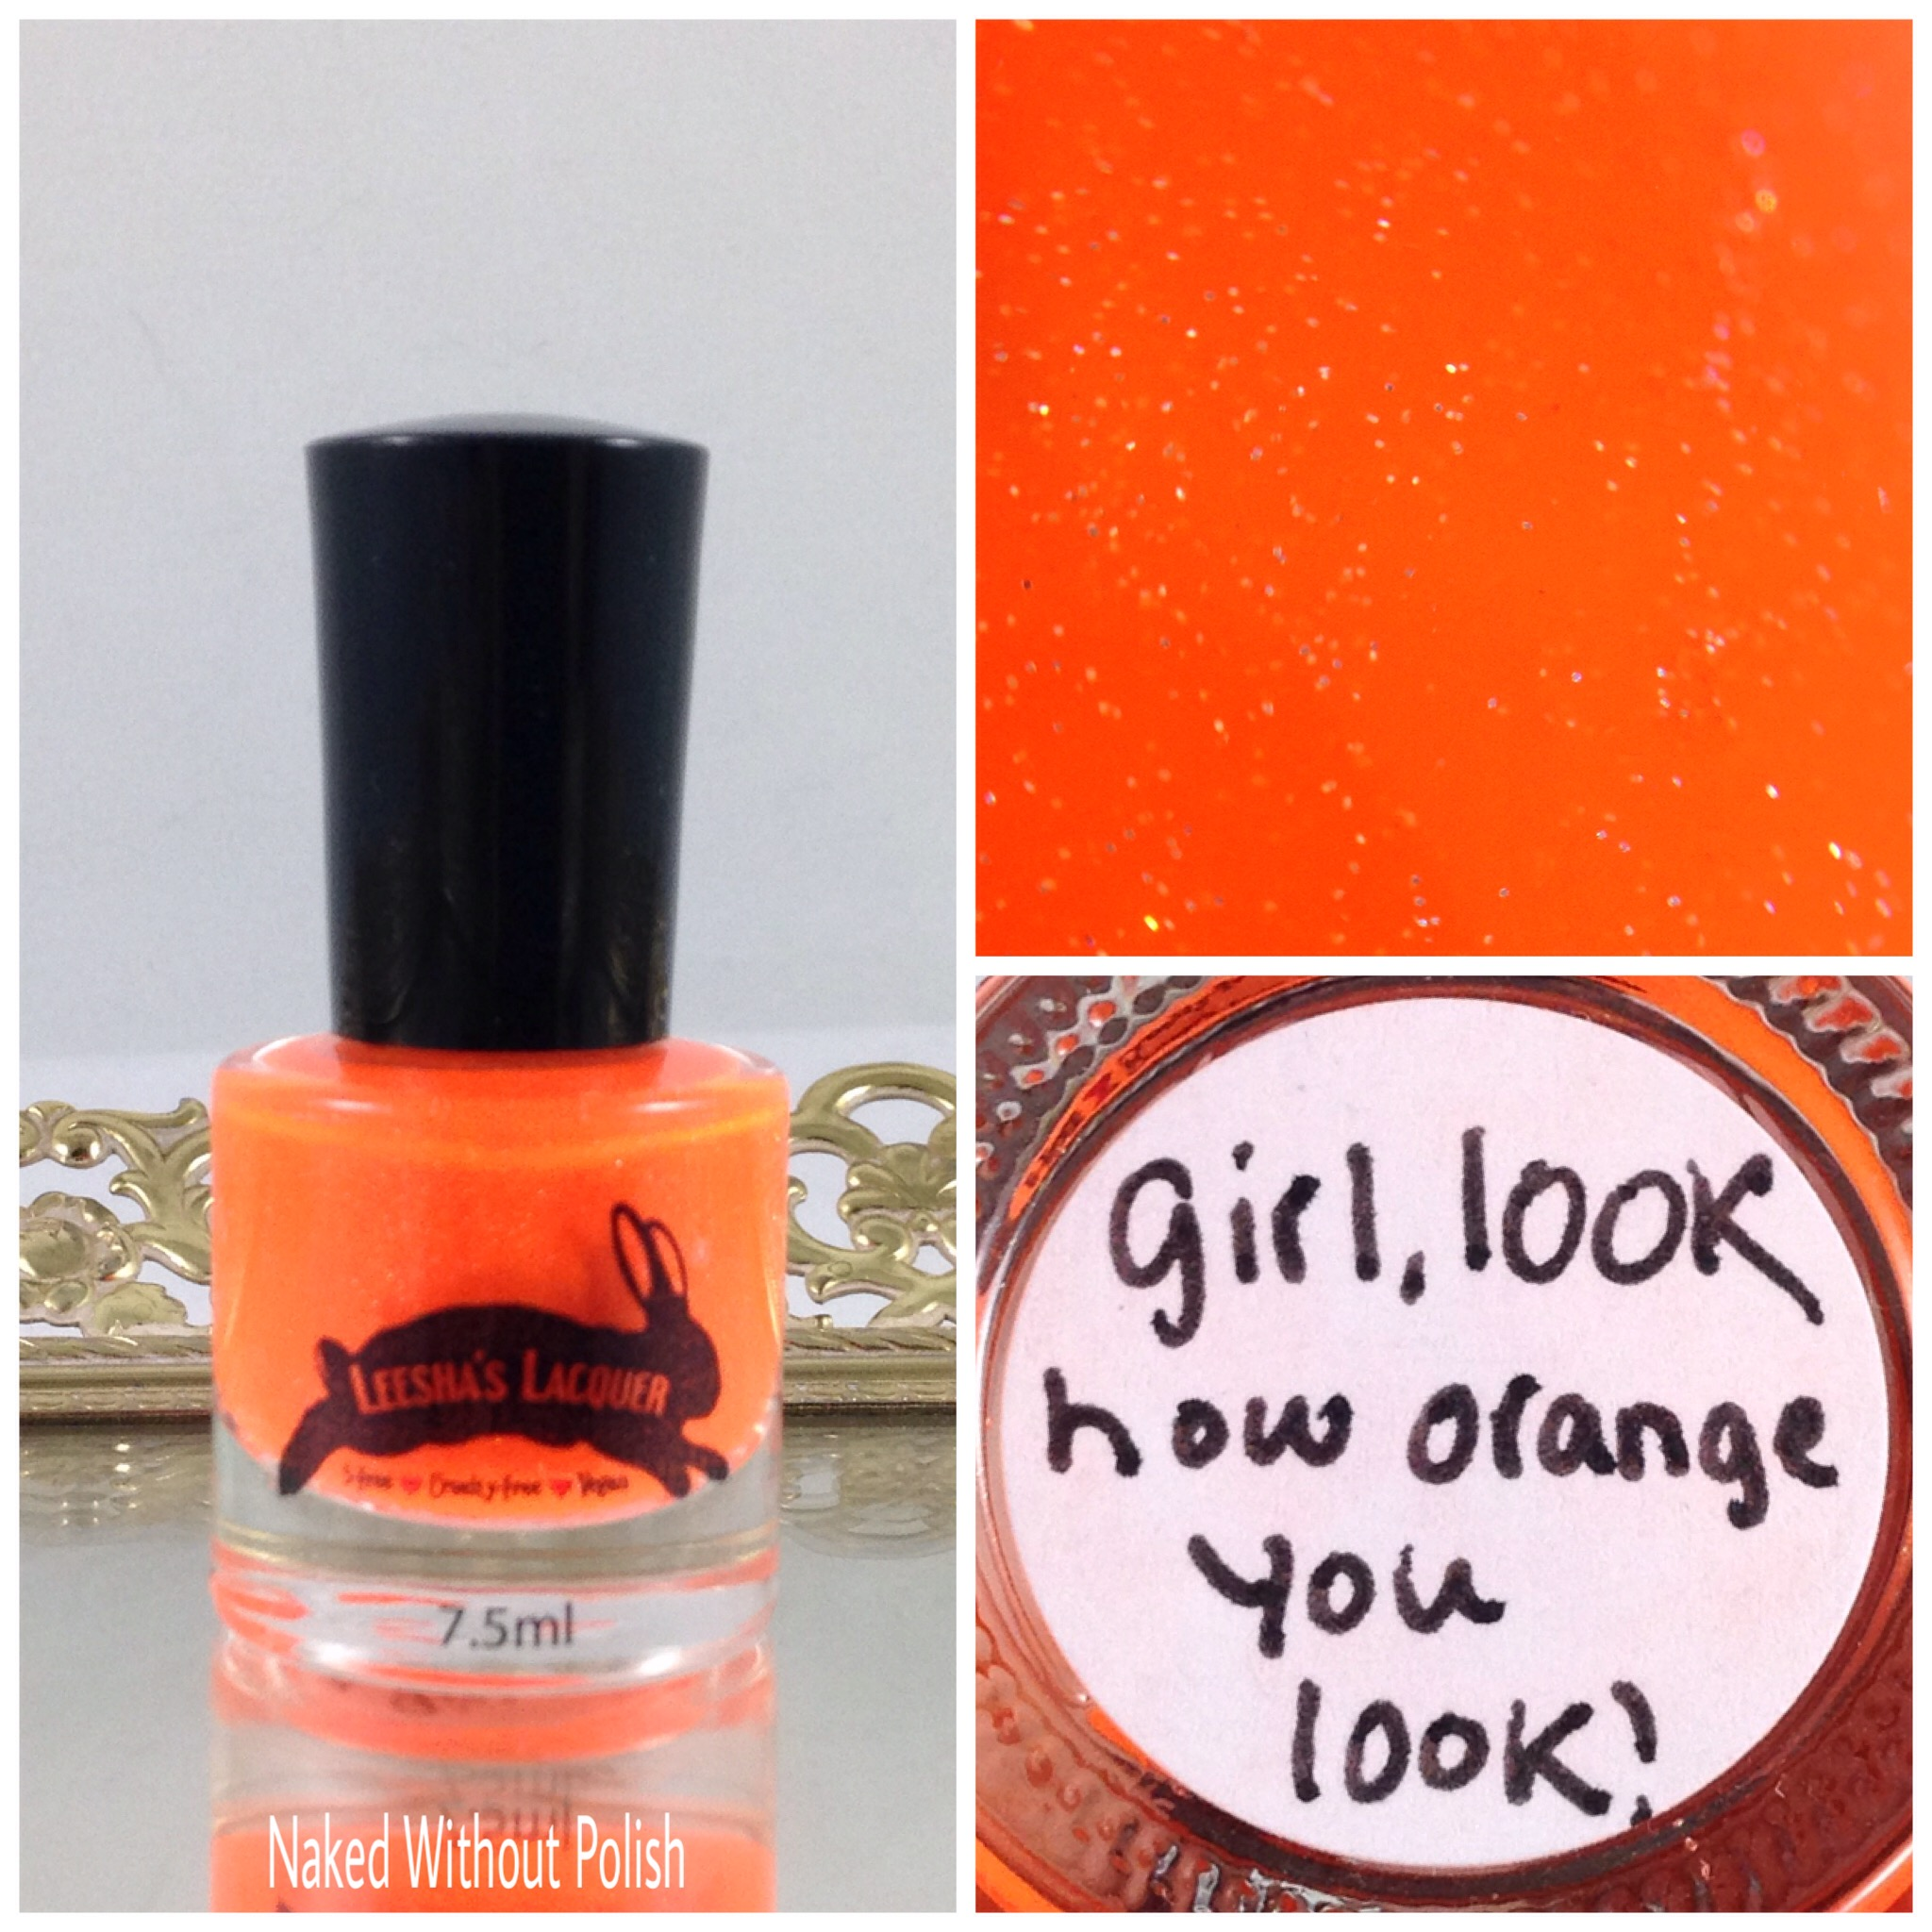 Leeshas-Lacquer-Girl-Look-How-Orange-You-Look-1